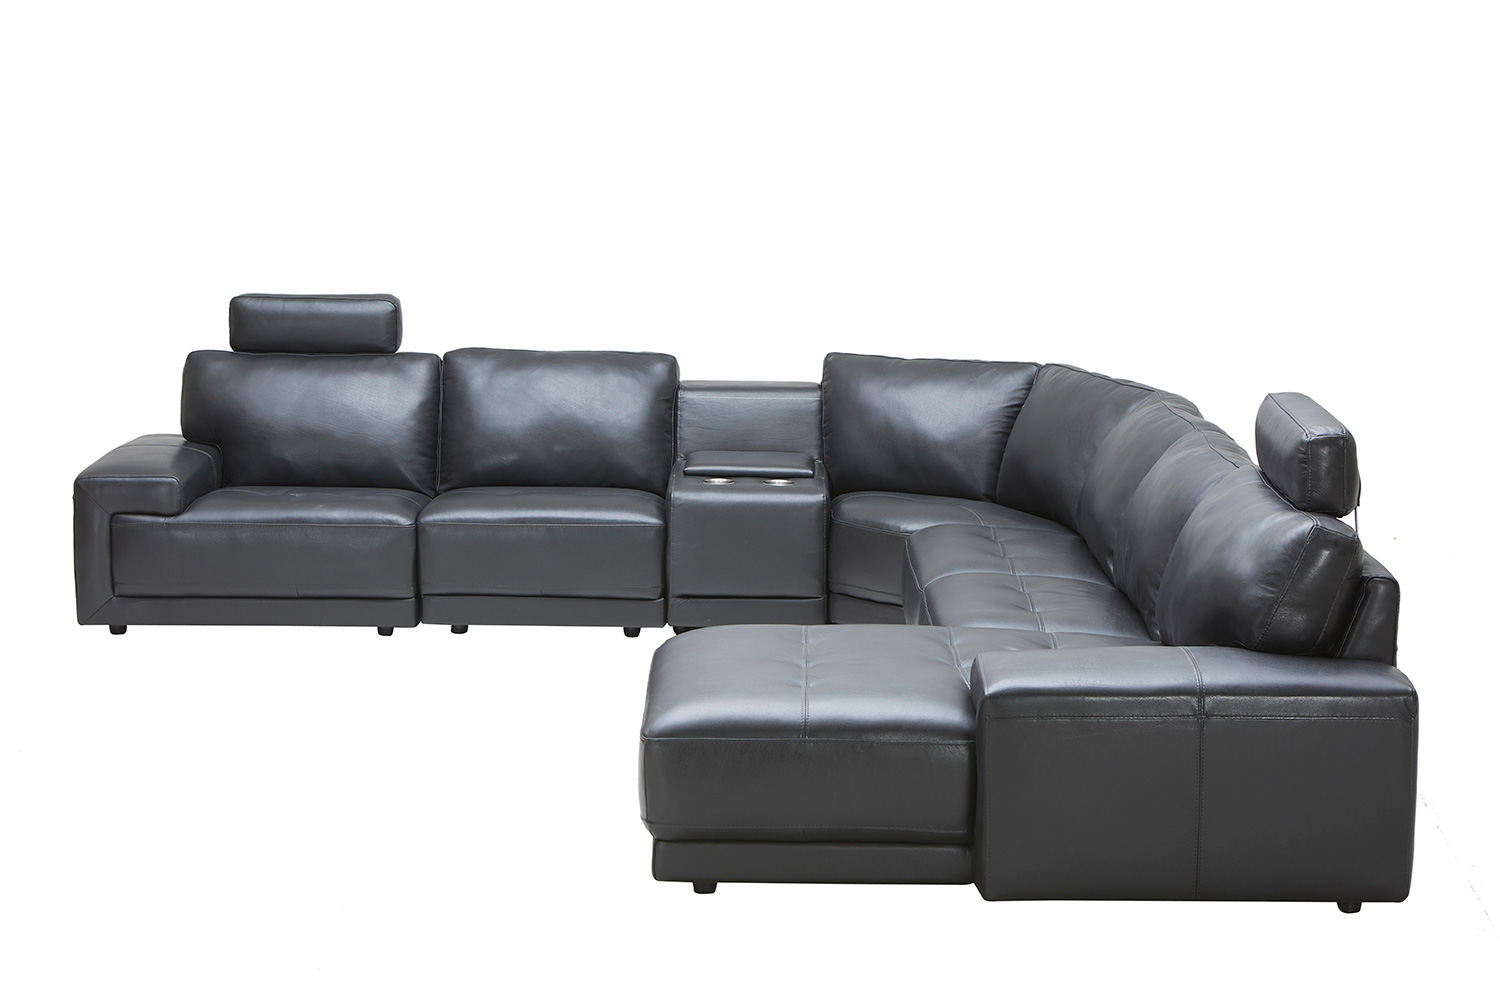 ELEMENTS Fine Home Furnishings Cinema LAF Sectional Sofa With Console  Storage Table   Black